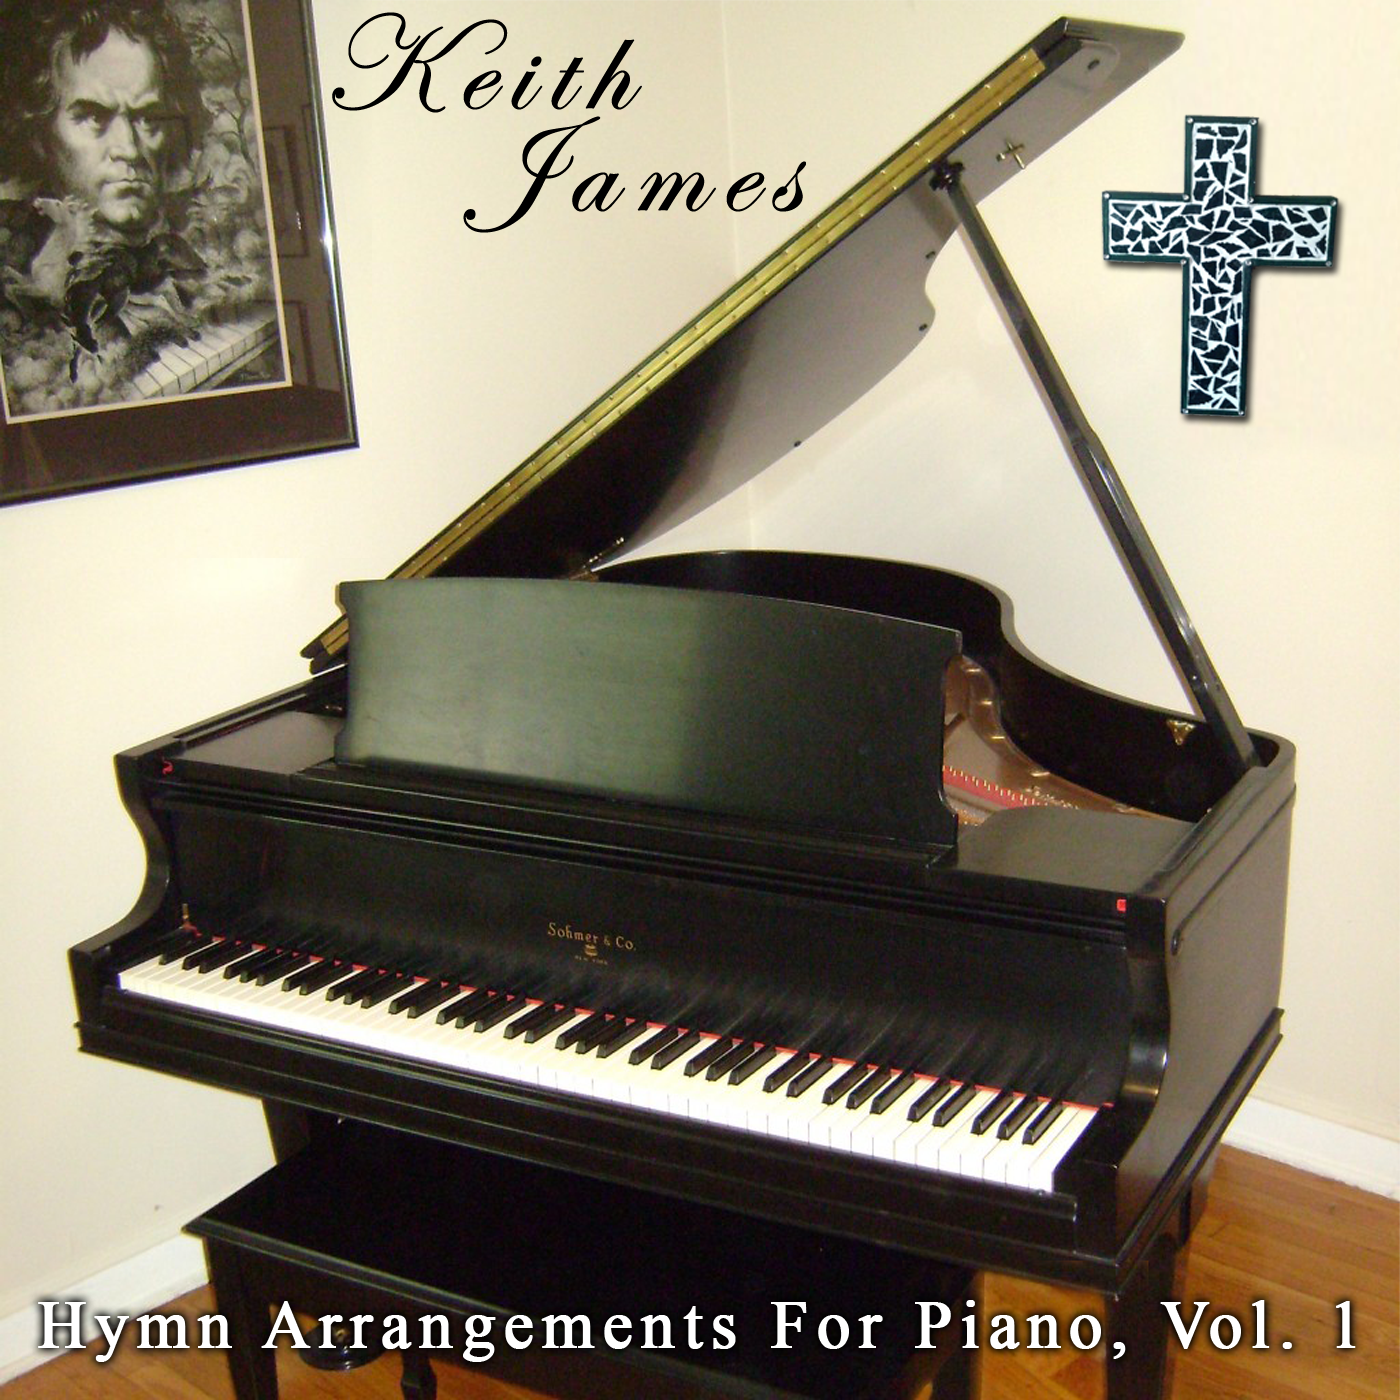 Keith James Hymn Arrangements Vol. 1